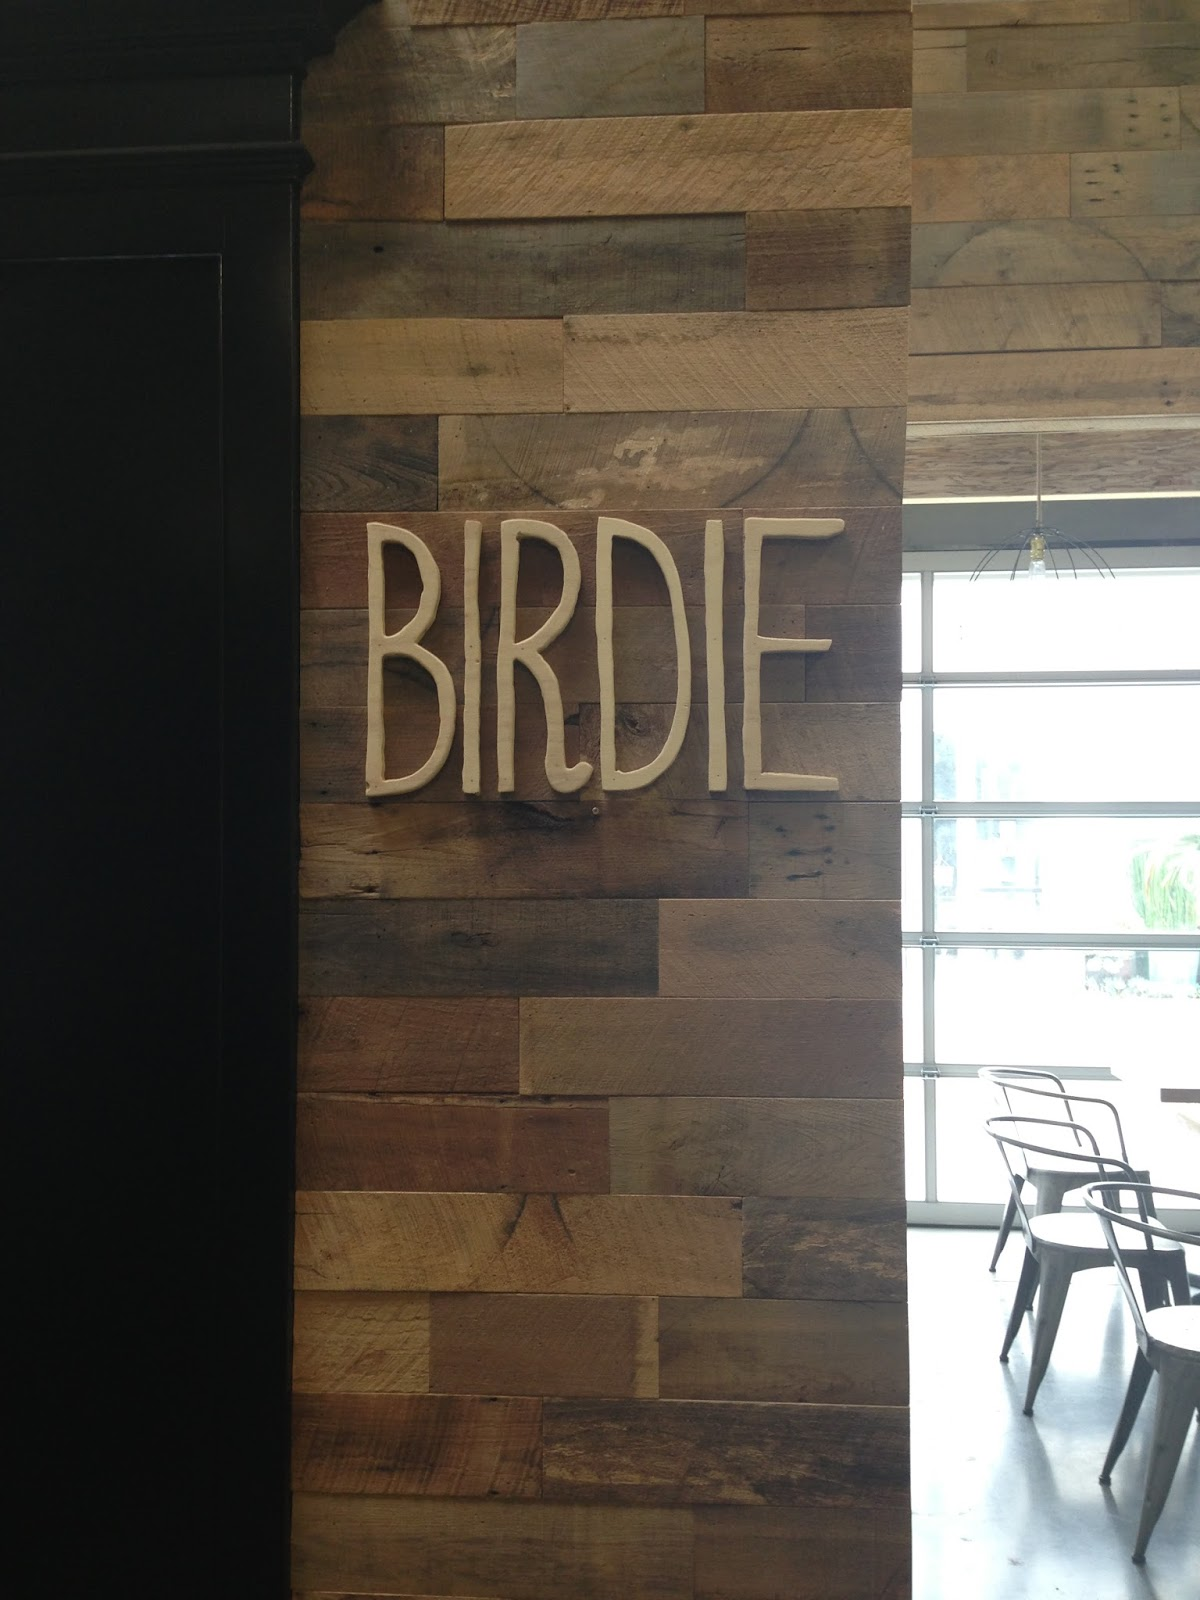 birdie bowl and juicery